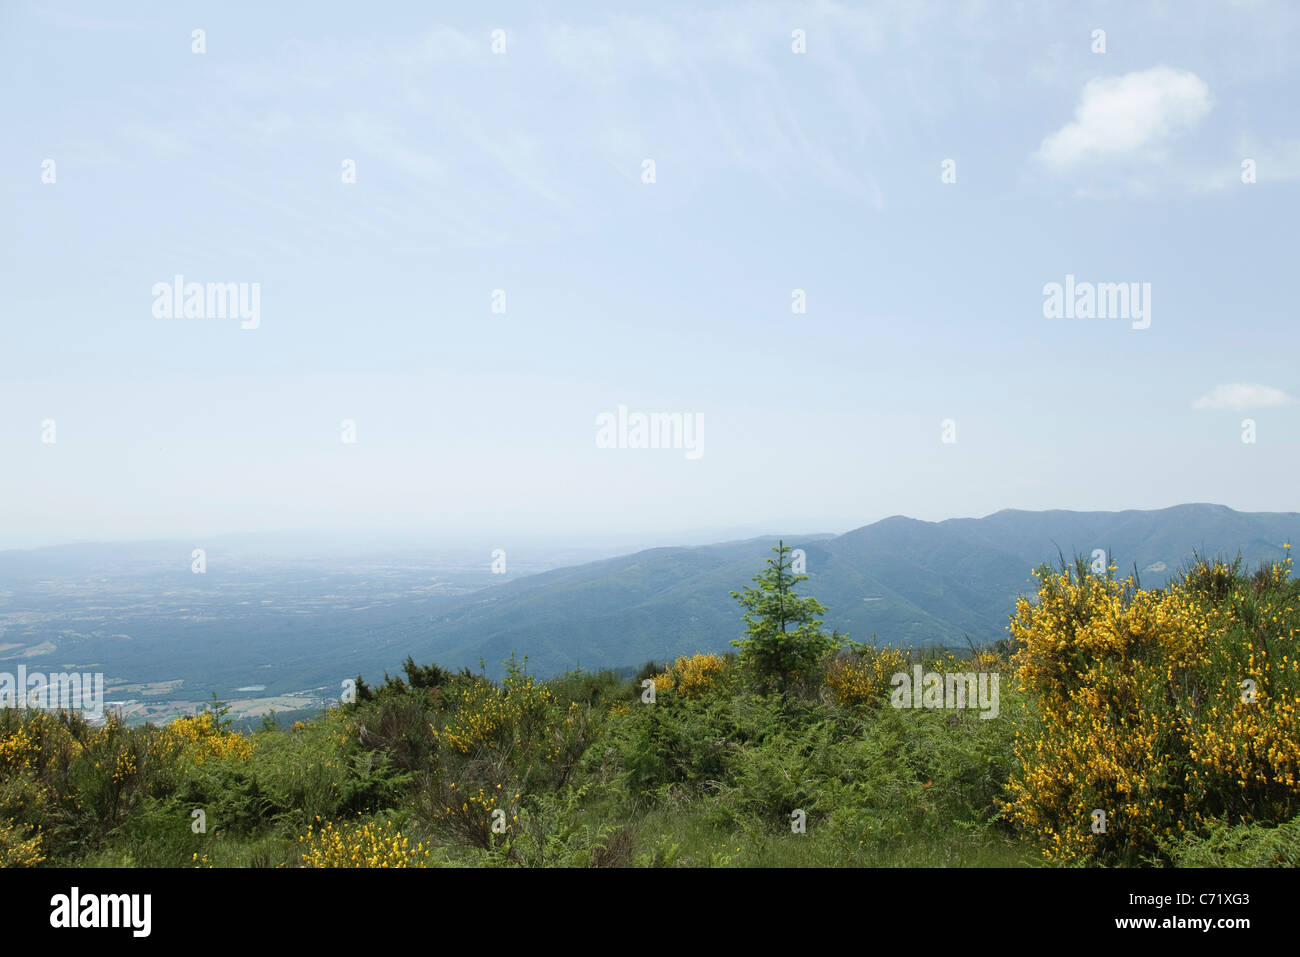 Mountain ranges and valley, high angle view - Stock Image